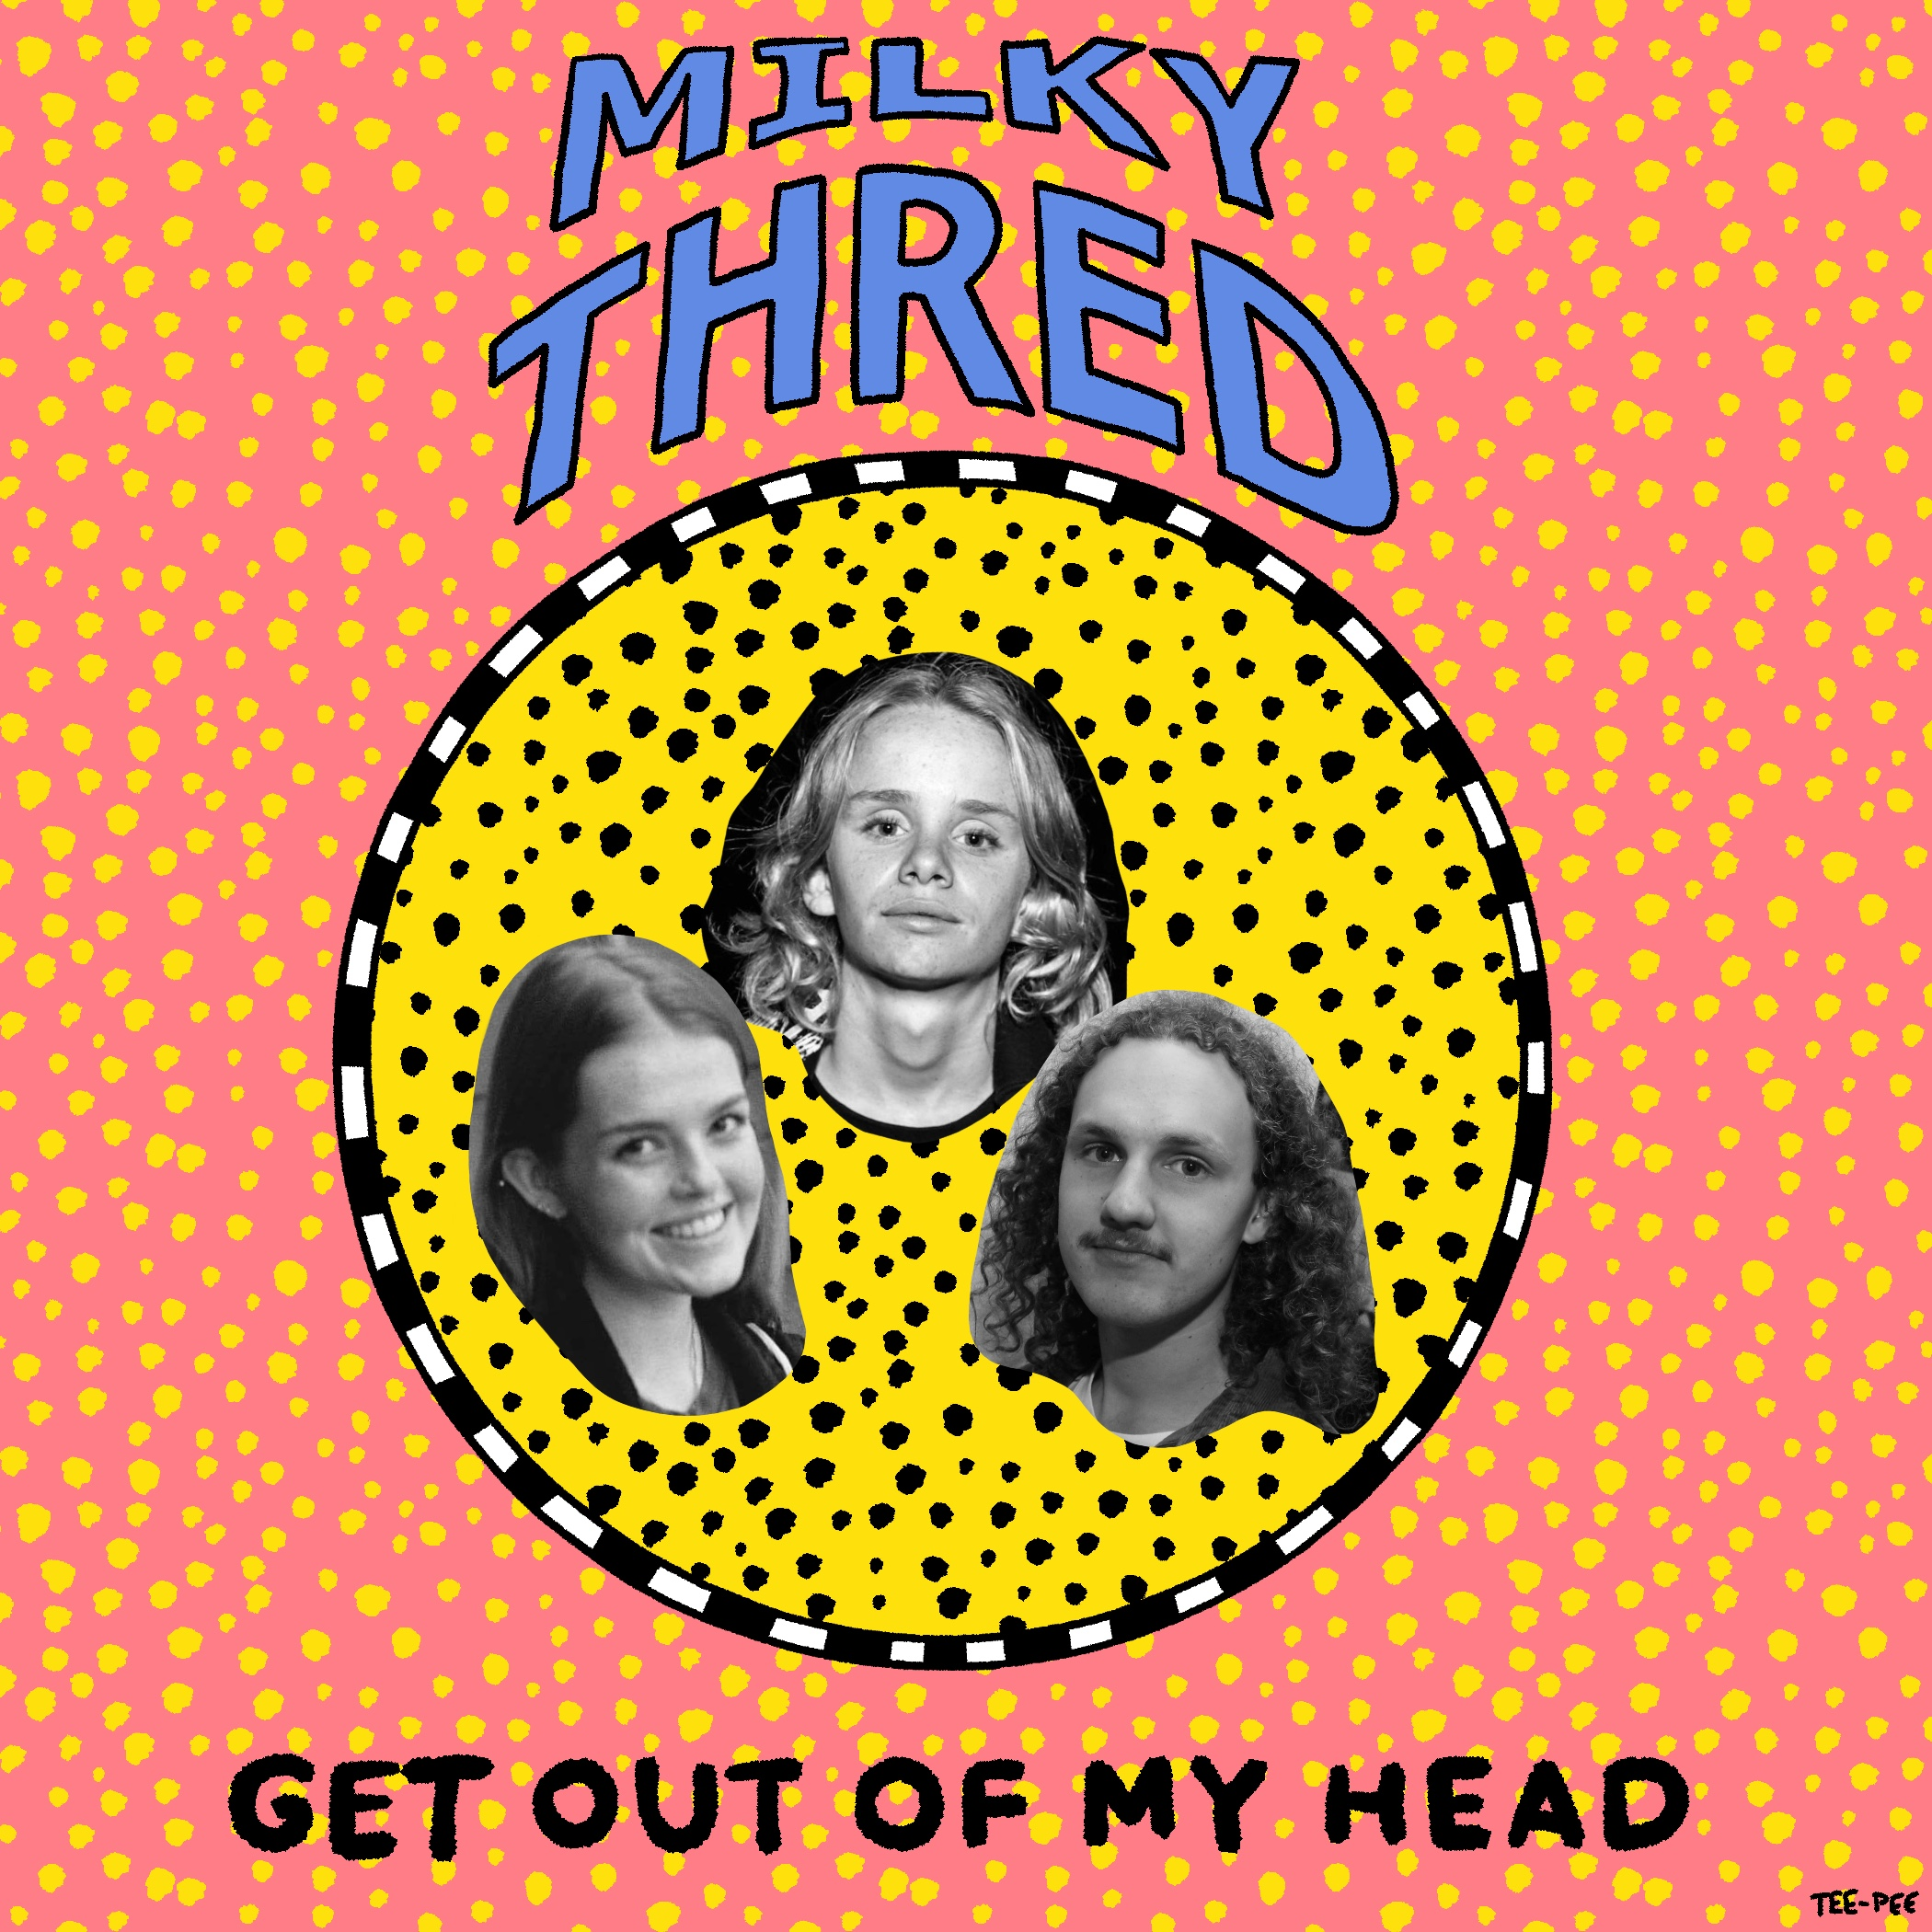 Get Out Of My Head - Single